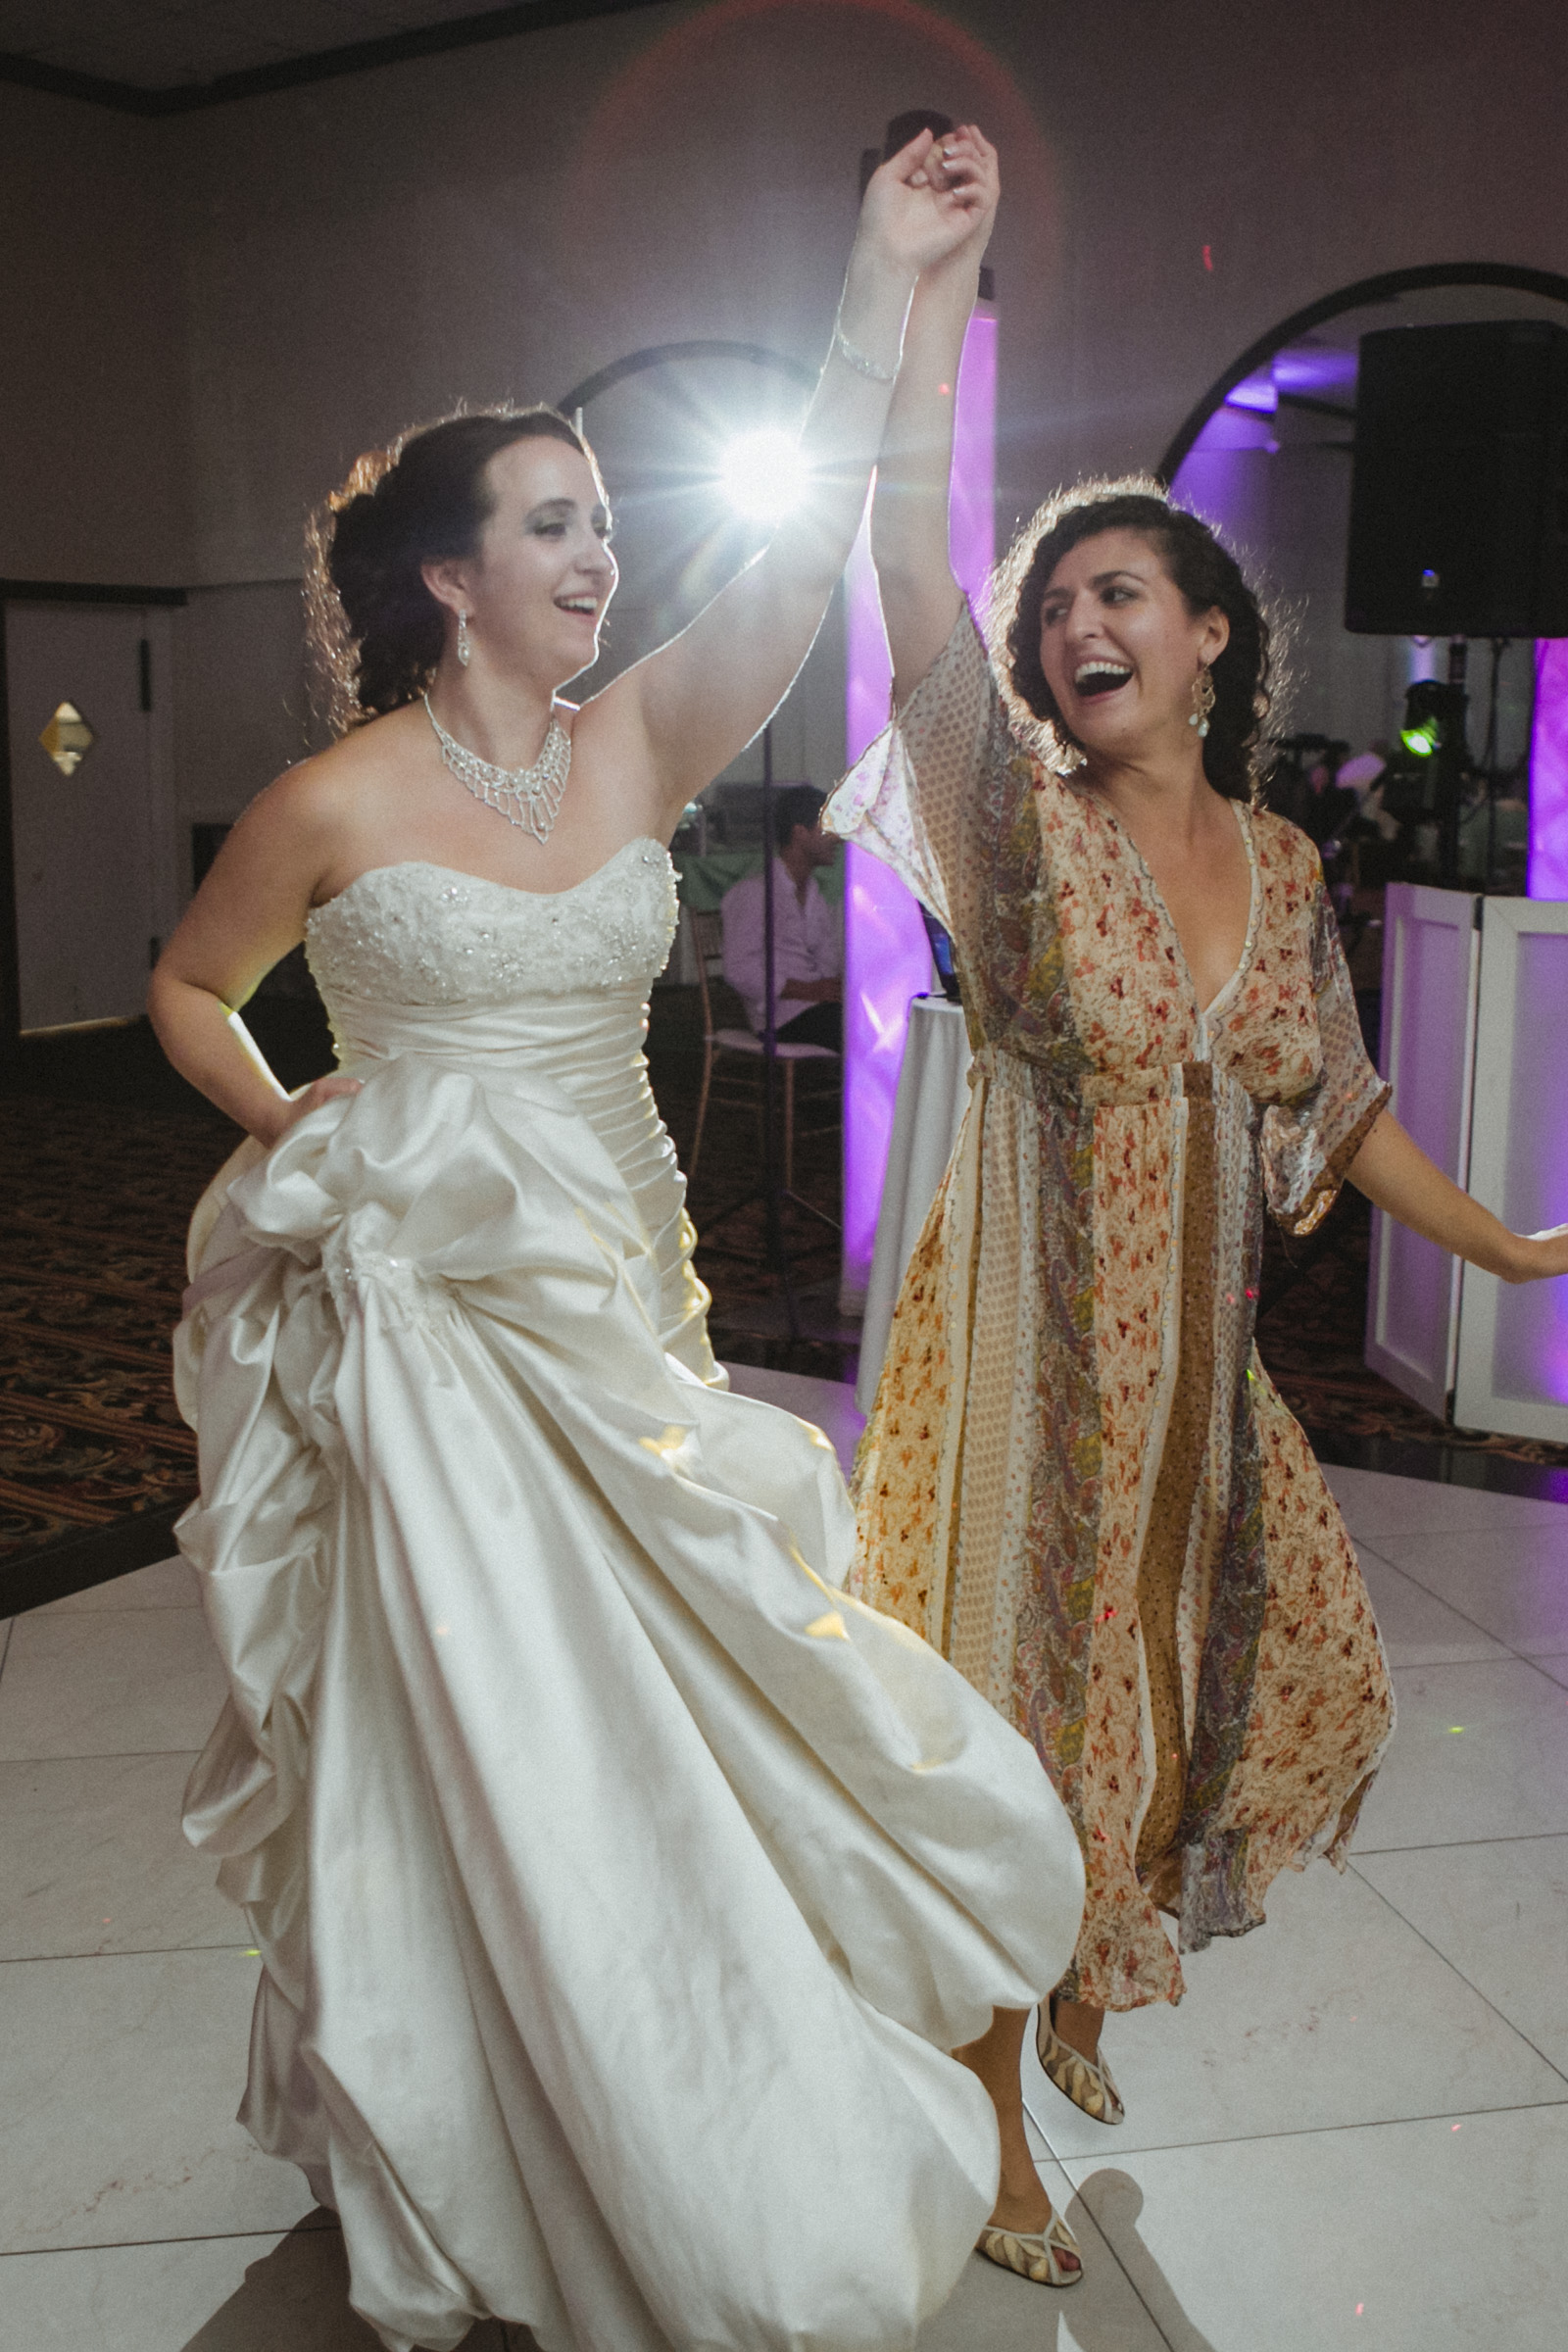 Bride dances with friend | Scavello's on the Island | Manhattan wedding | Bronx Wedding | Cathy & Antonello's wedding | Amy Sims Photography